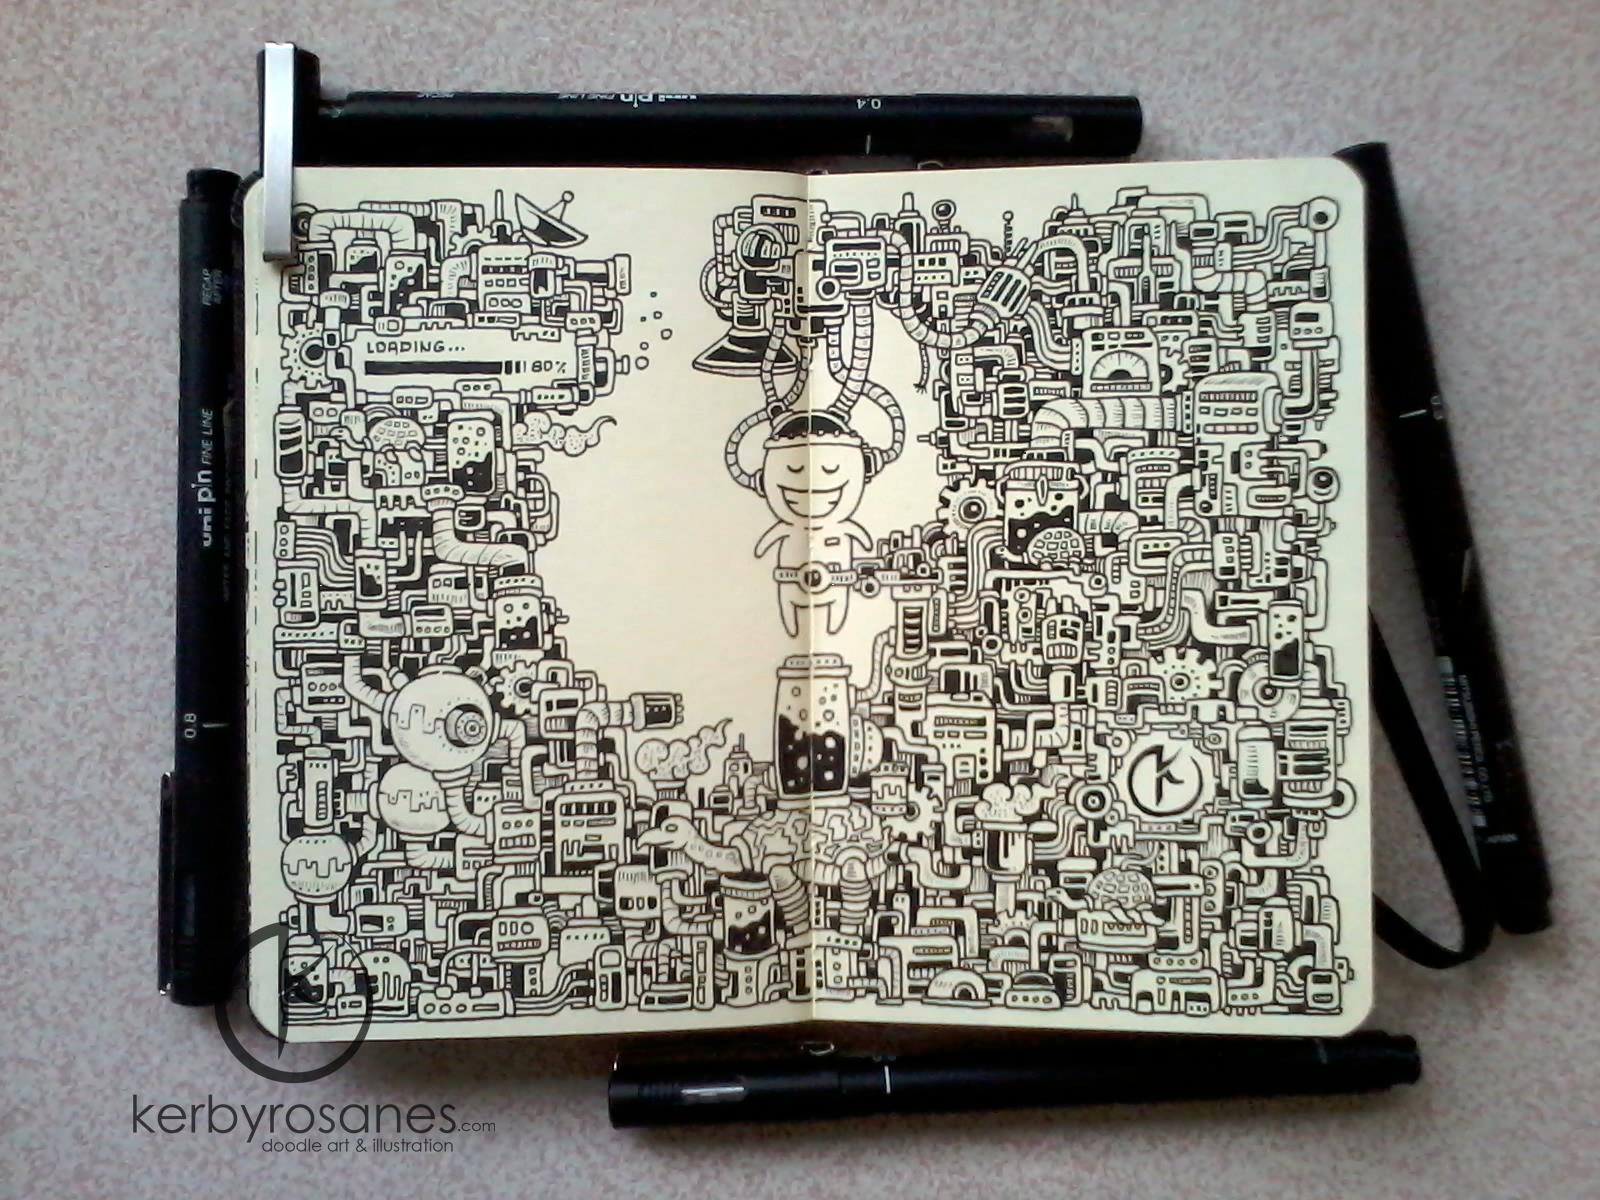 Kerby rosanes i jego magiczny notes moleskine for Kerby rosanes